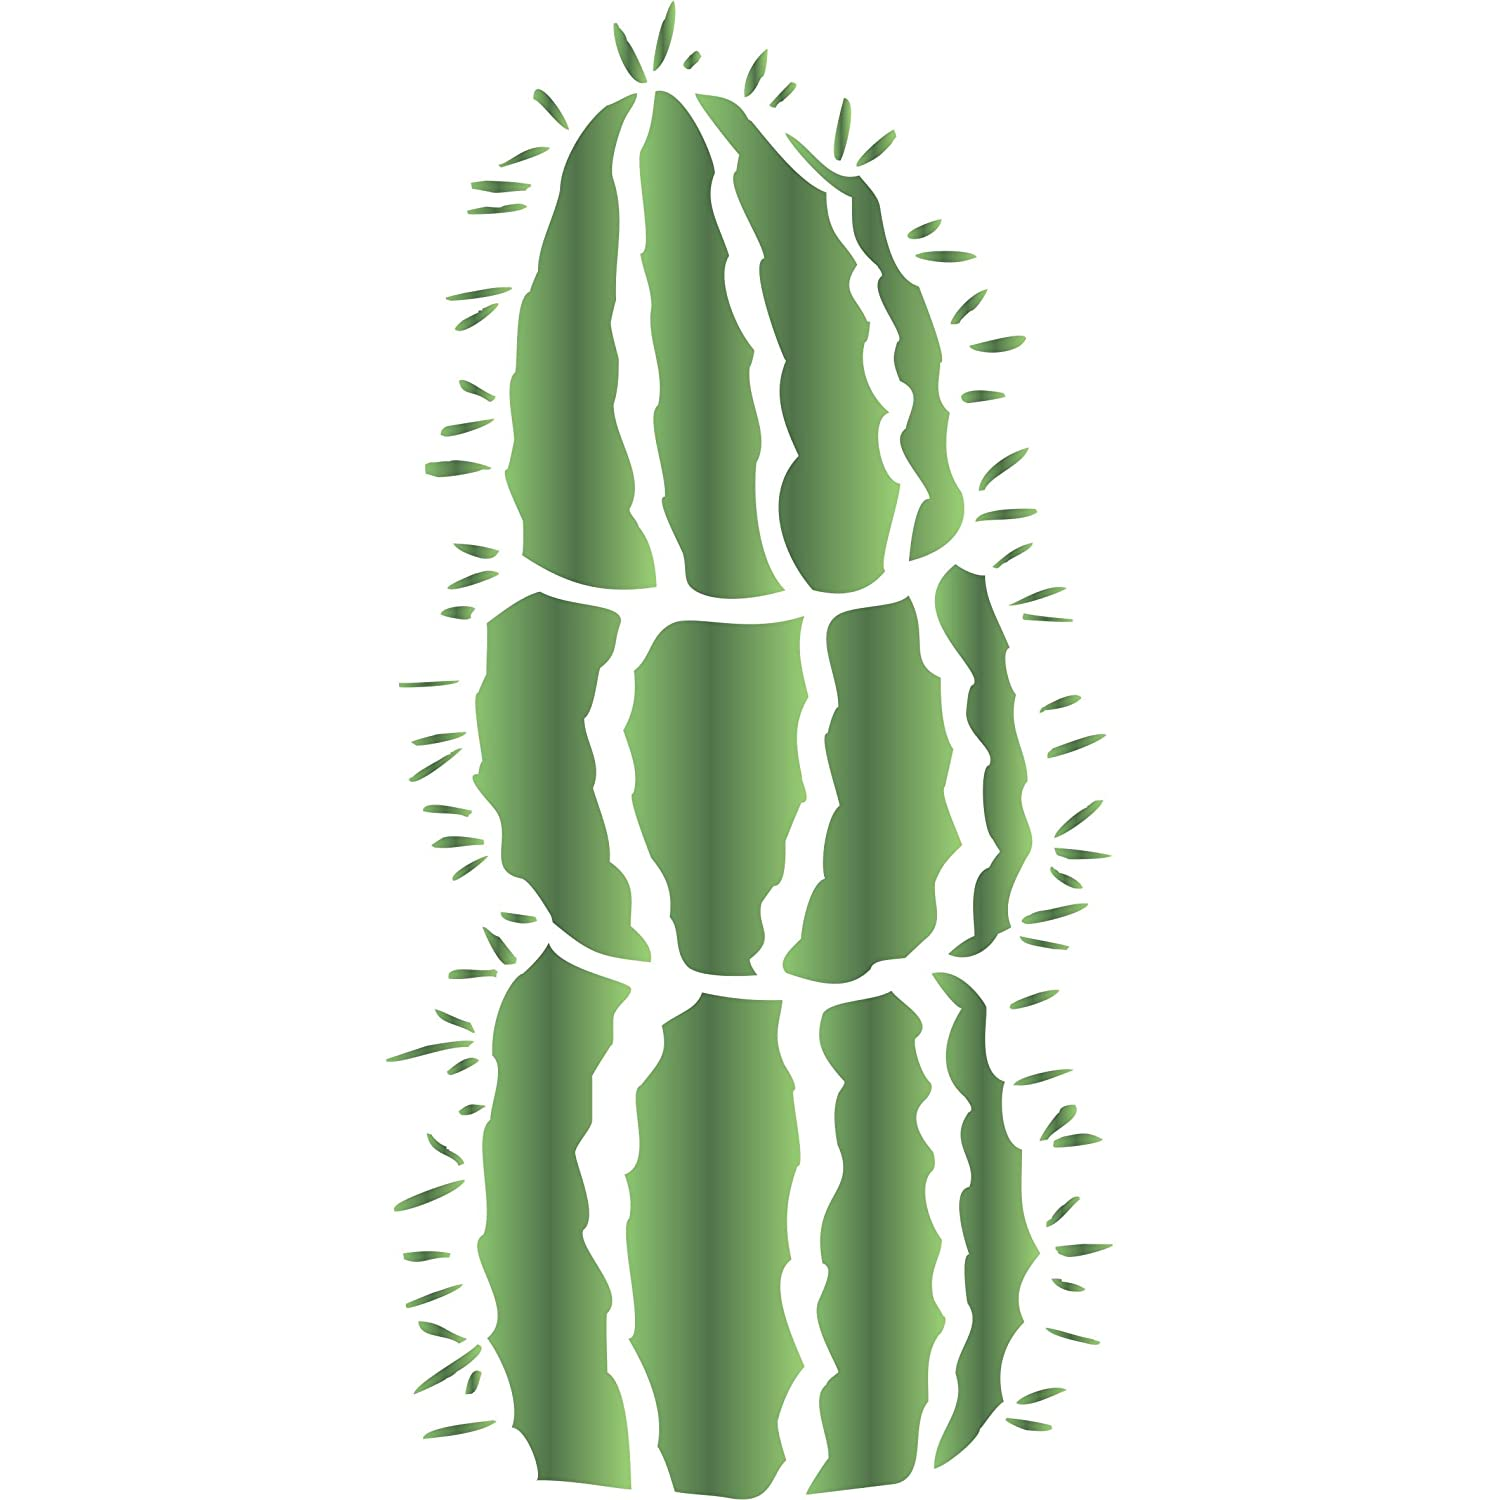 Amazon mexican fence post cactus stencil size 65w x 14h amazon mexican fence post cactus stencil size 65w x 14h reusable wall stencils for painting best quality cactus wall decor ideas use on amipublicfo Gallery